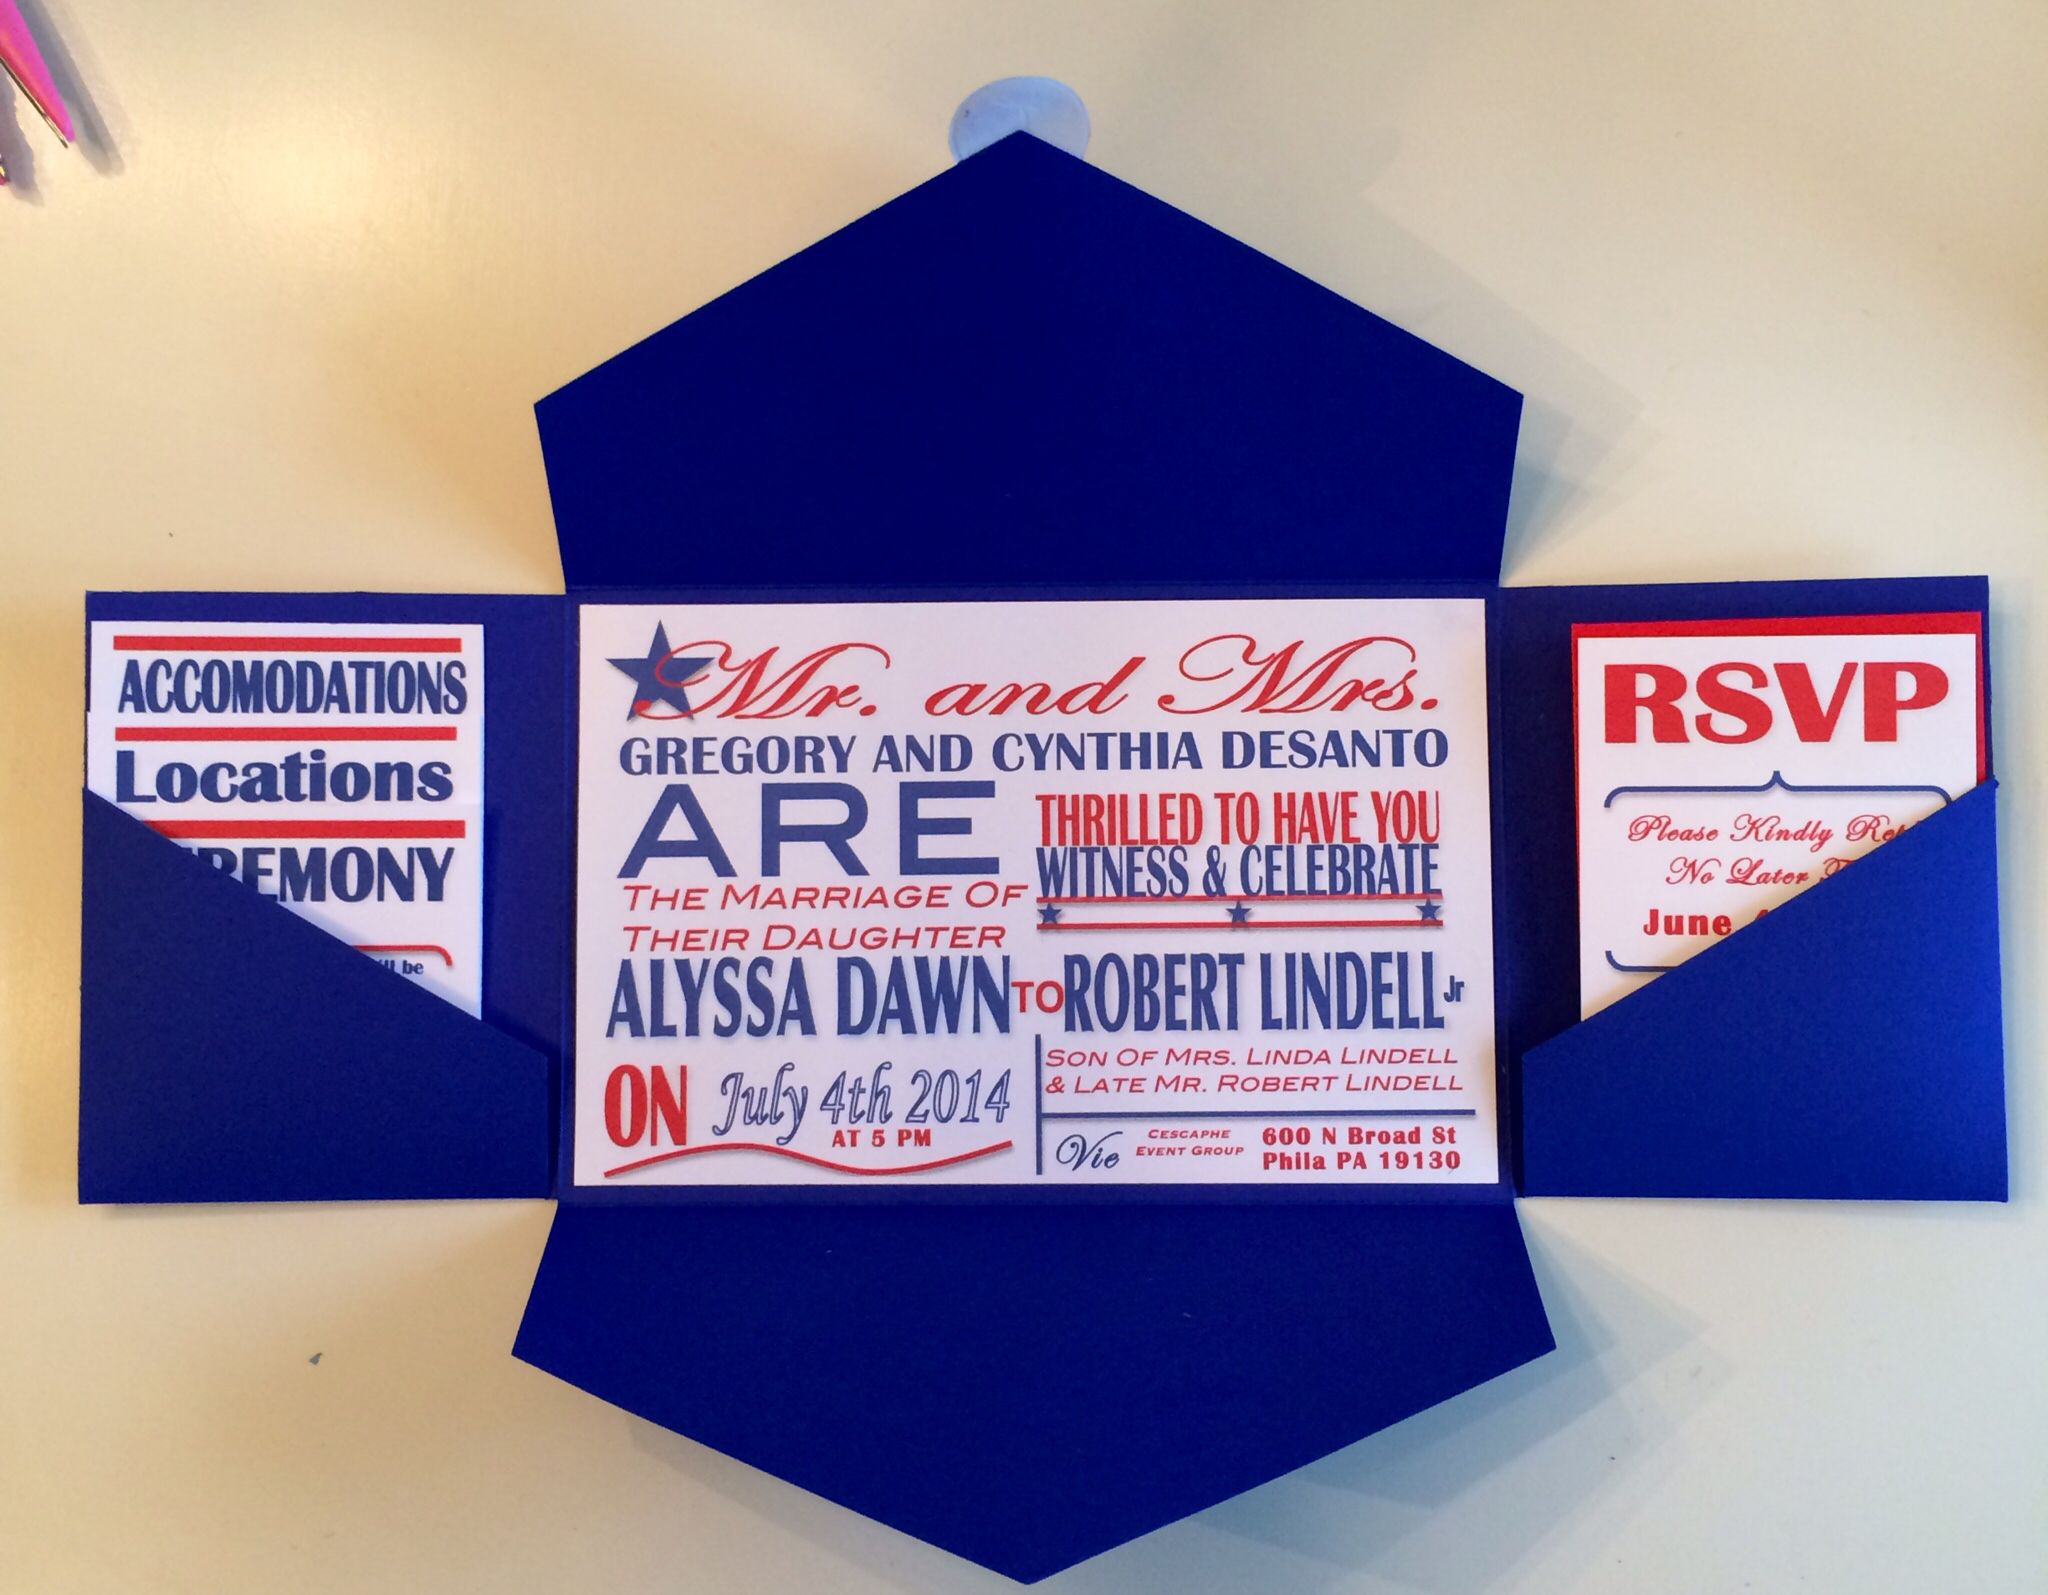 images for 4th of july wedding invitations